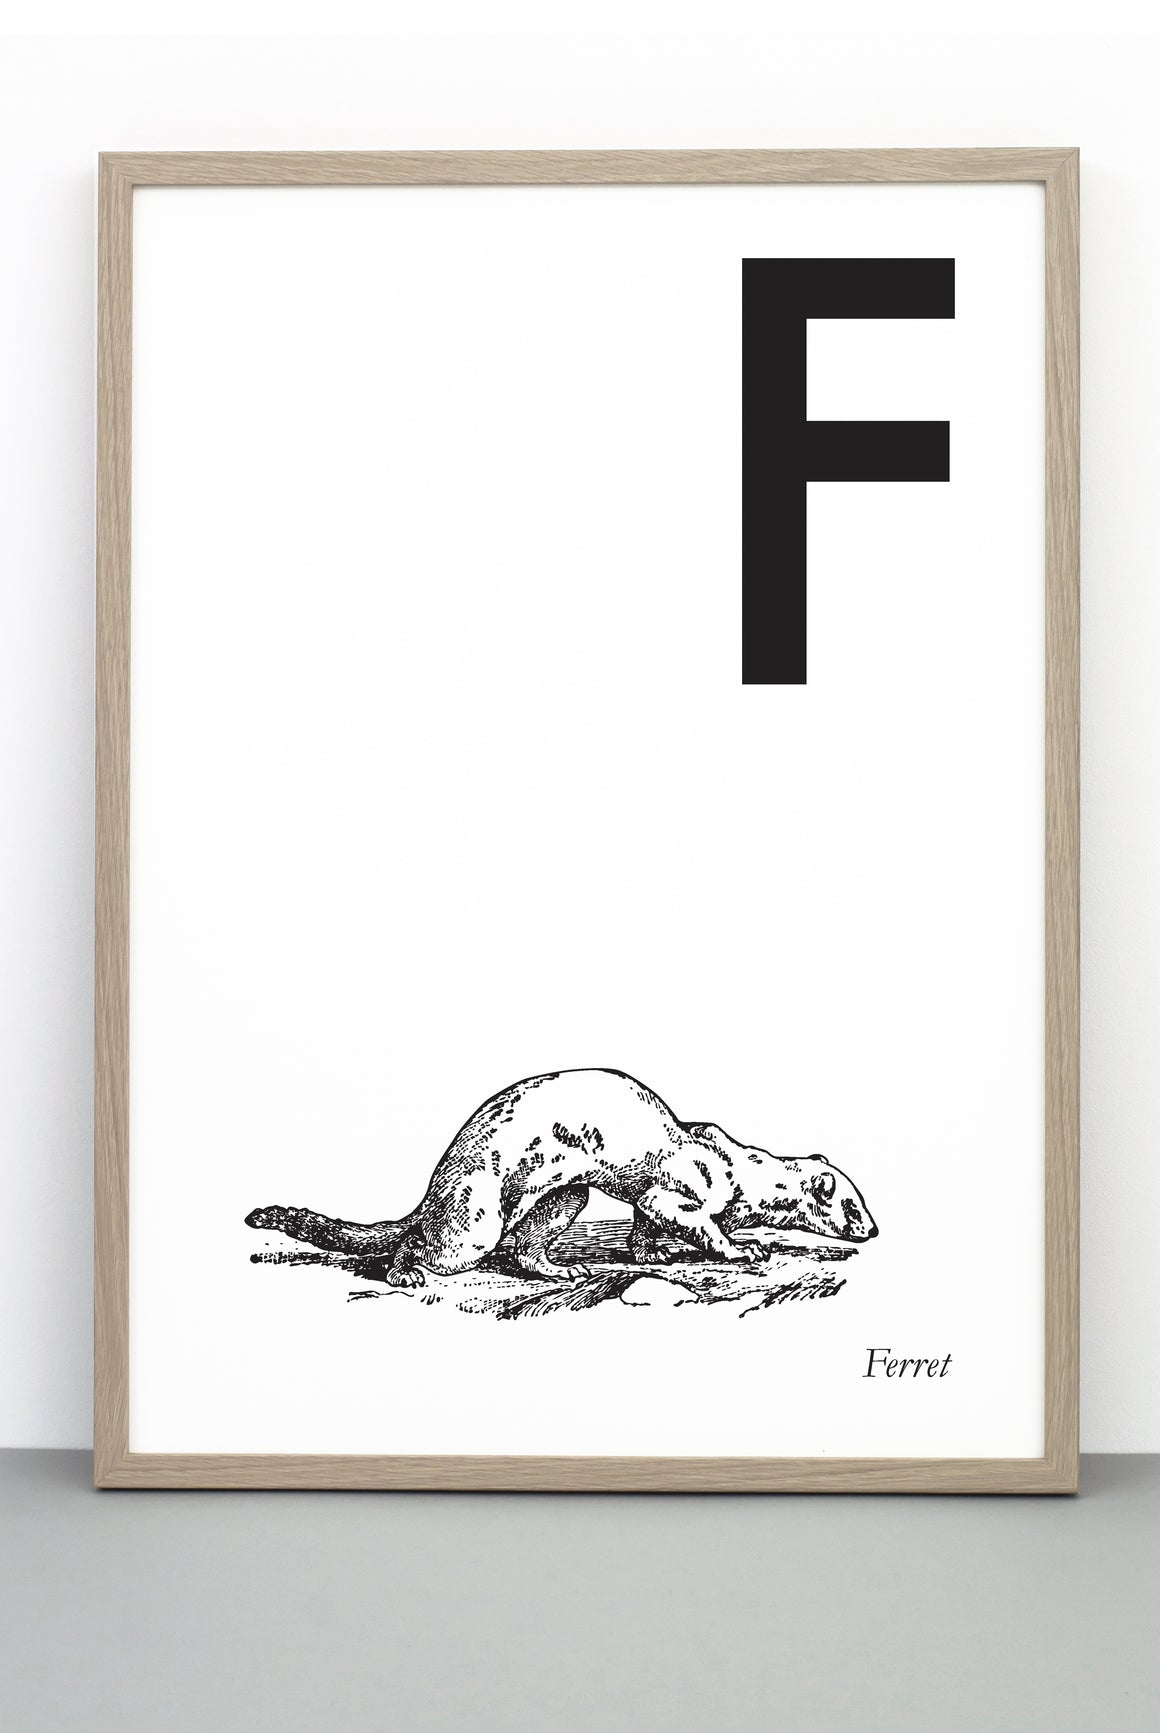 ANIMAL LETTER F, FERRET, F DOWNLOADABLE PRINT